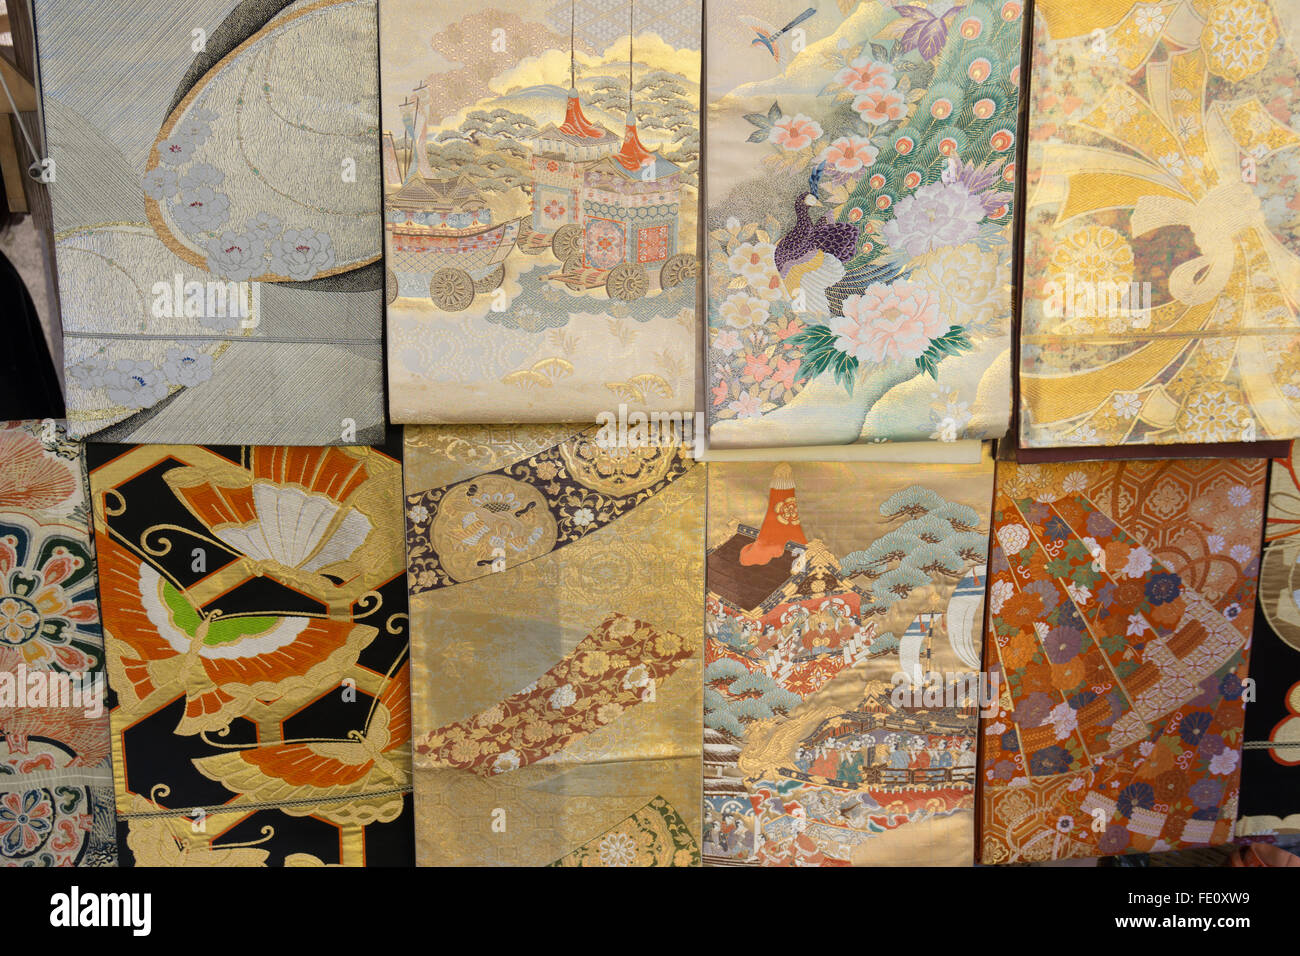 elaborate kimono fabric on display in Japan - Stock Image